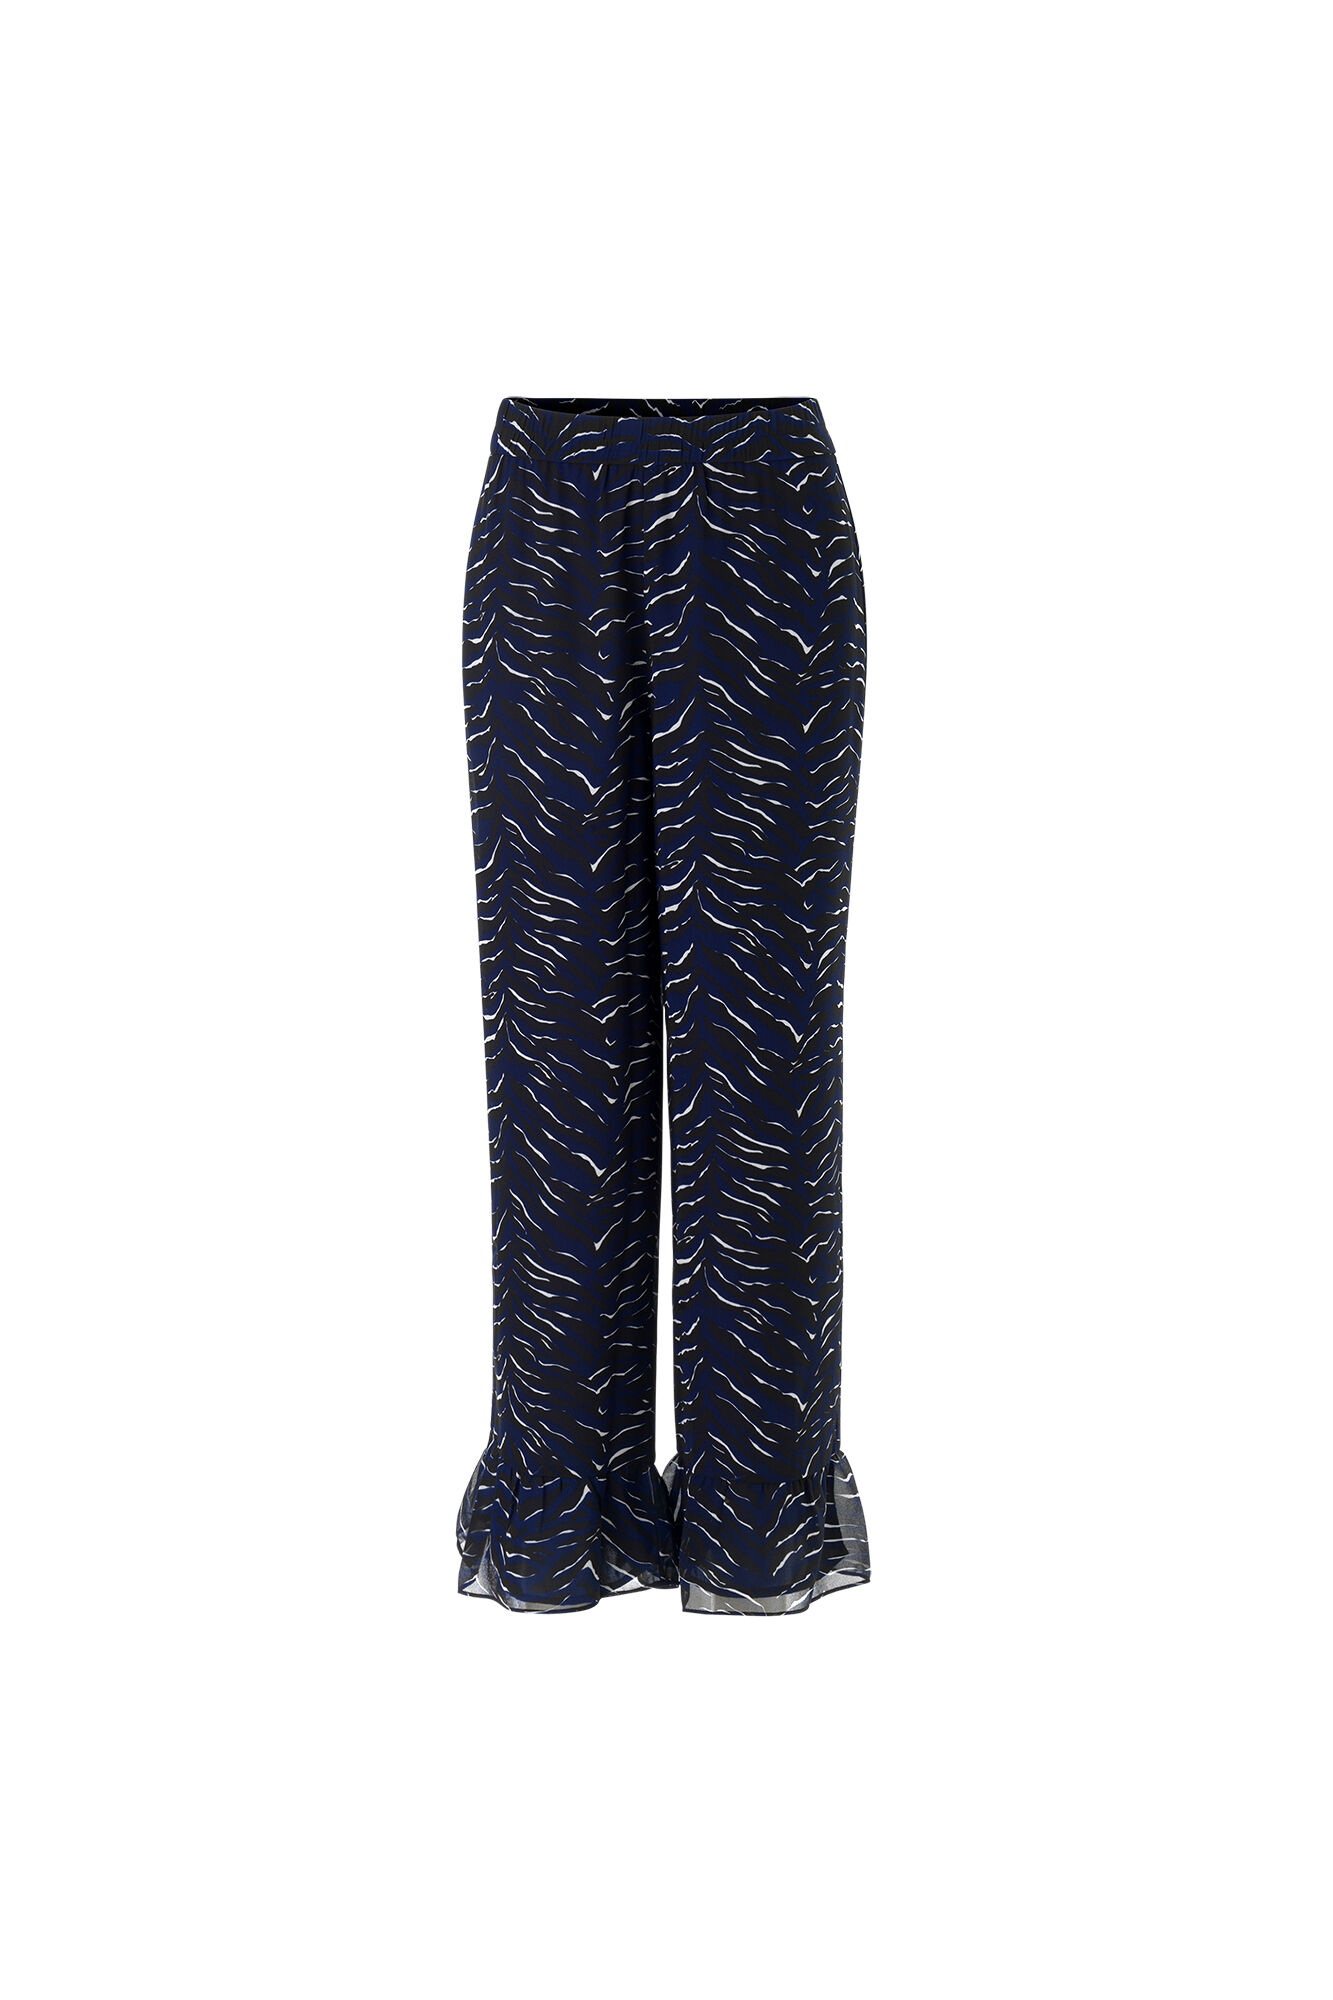 ENASPEN PANTS AOP 6395, NAVY TIGER AOP